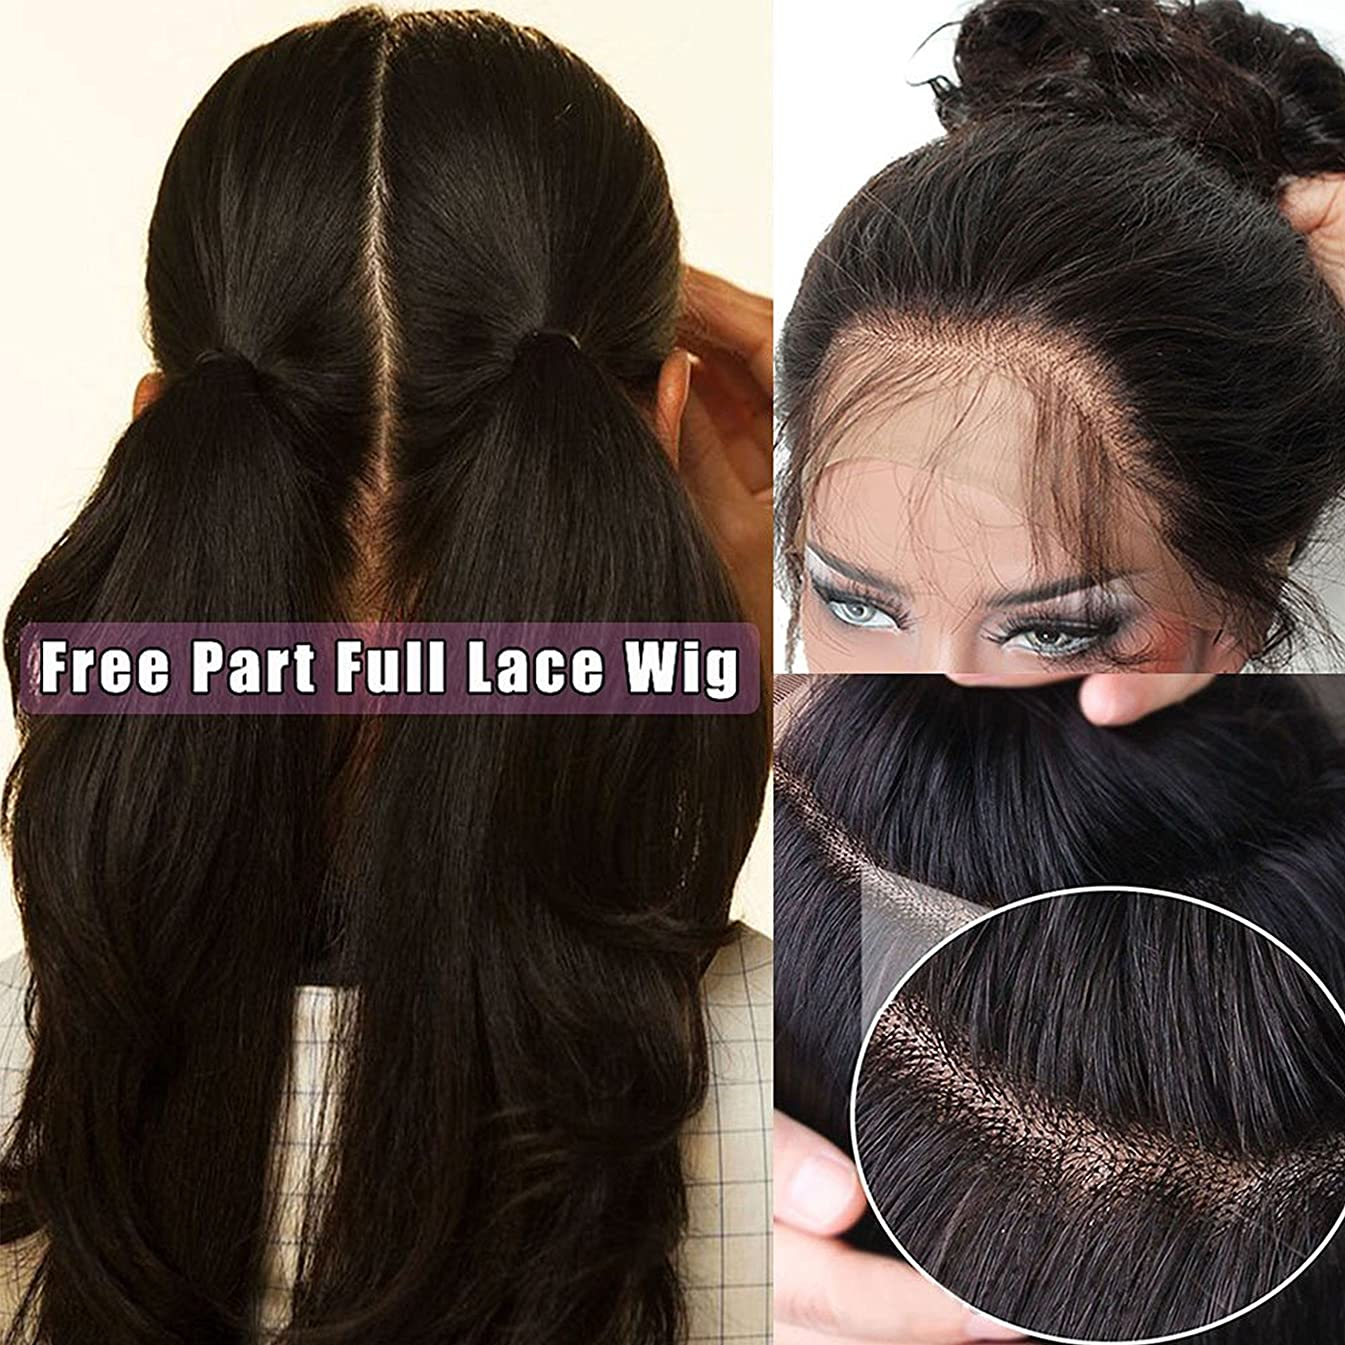 Pre Plucked Full Lace Human Hair Wigs for Black Women Straight Glueless Lace Front Wigs with Baby Hair (20 inch full lace wig 130 density)